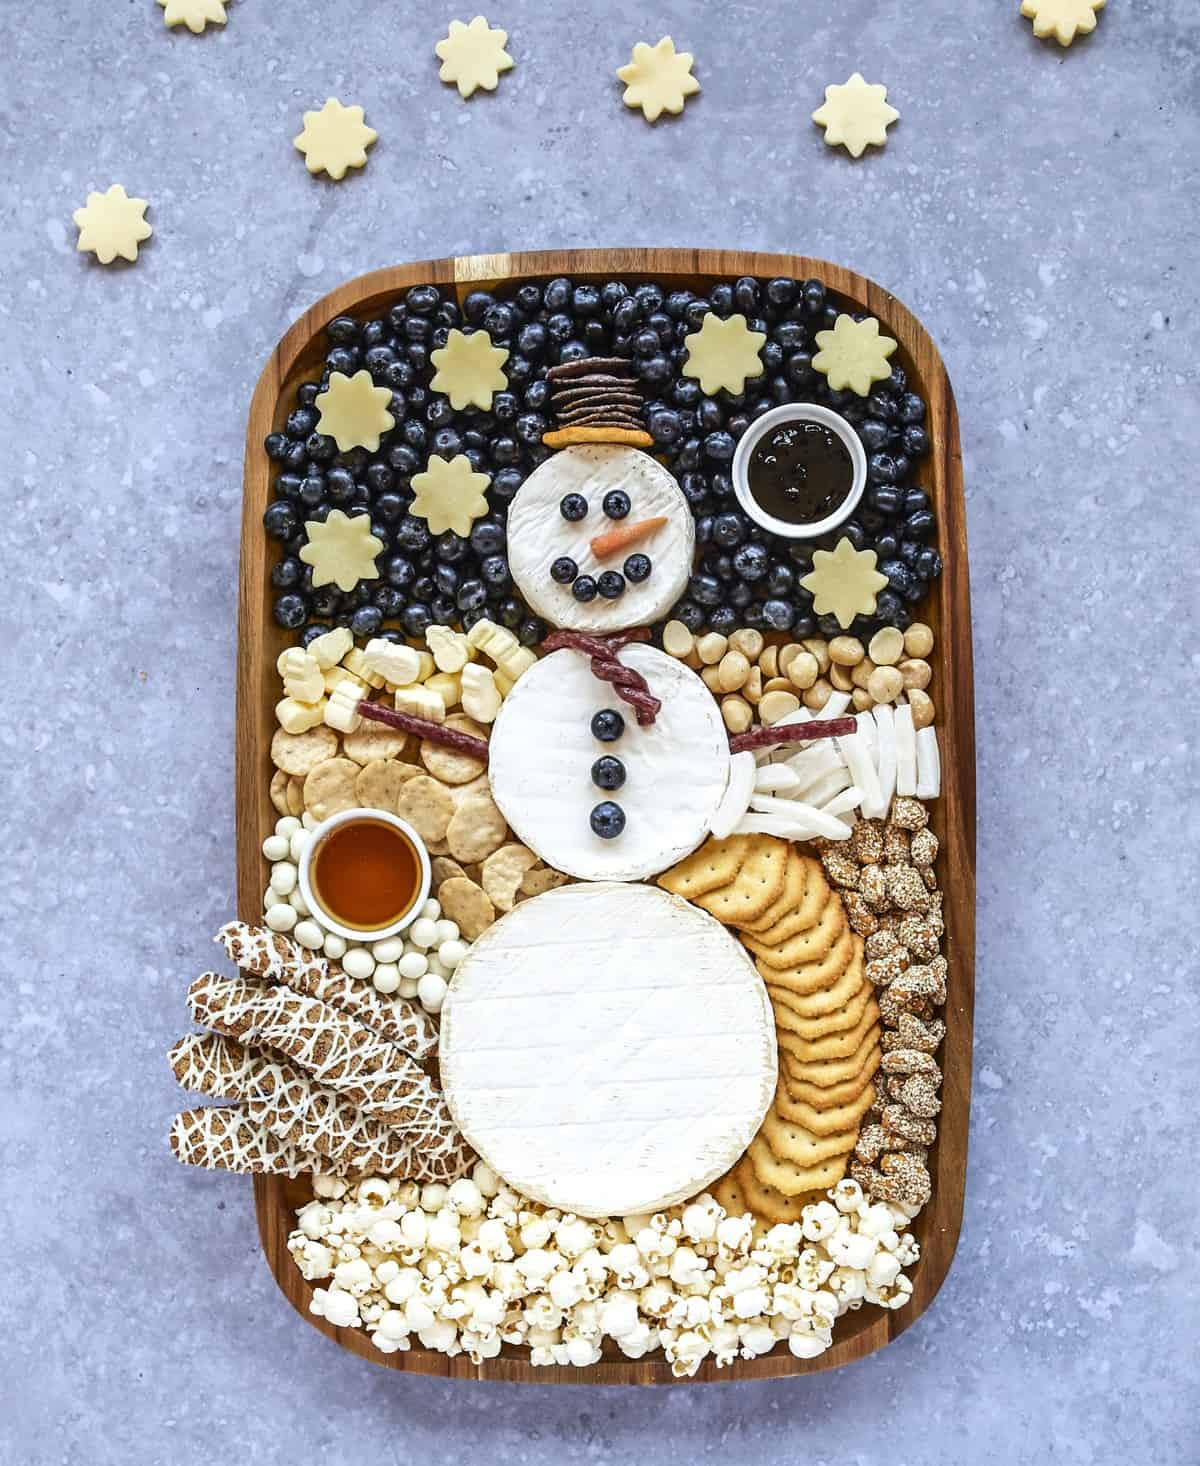 Snowman Snack Board from TheBakerMama.com